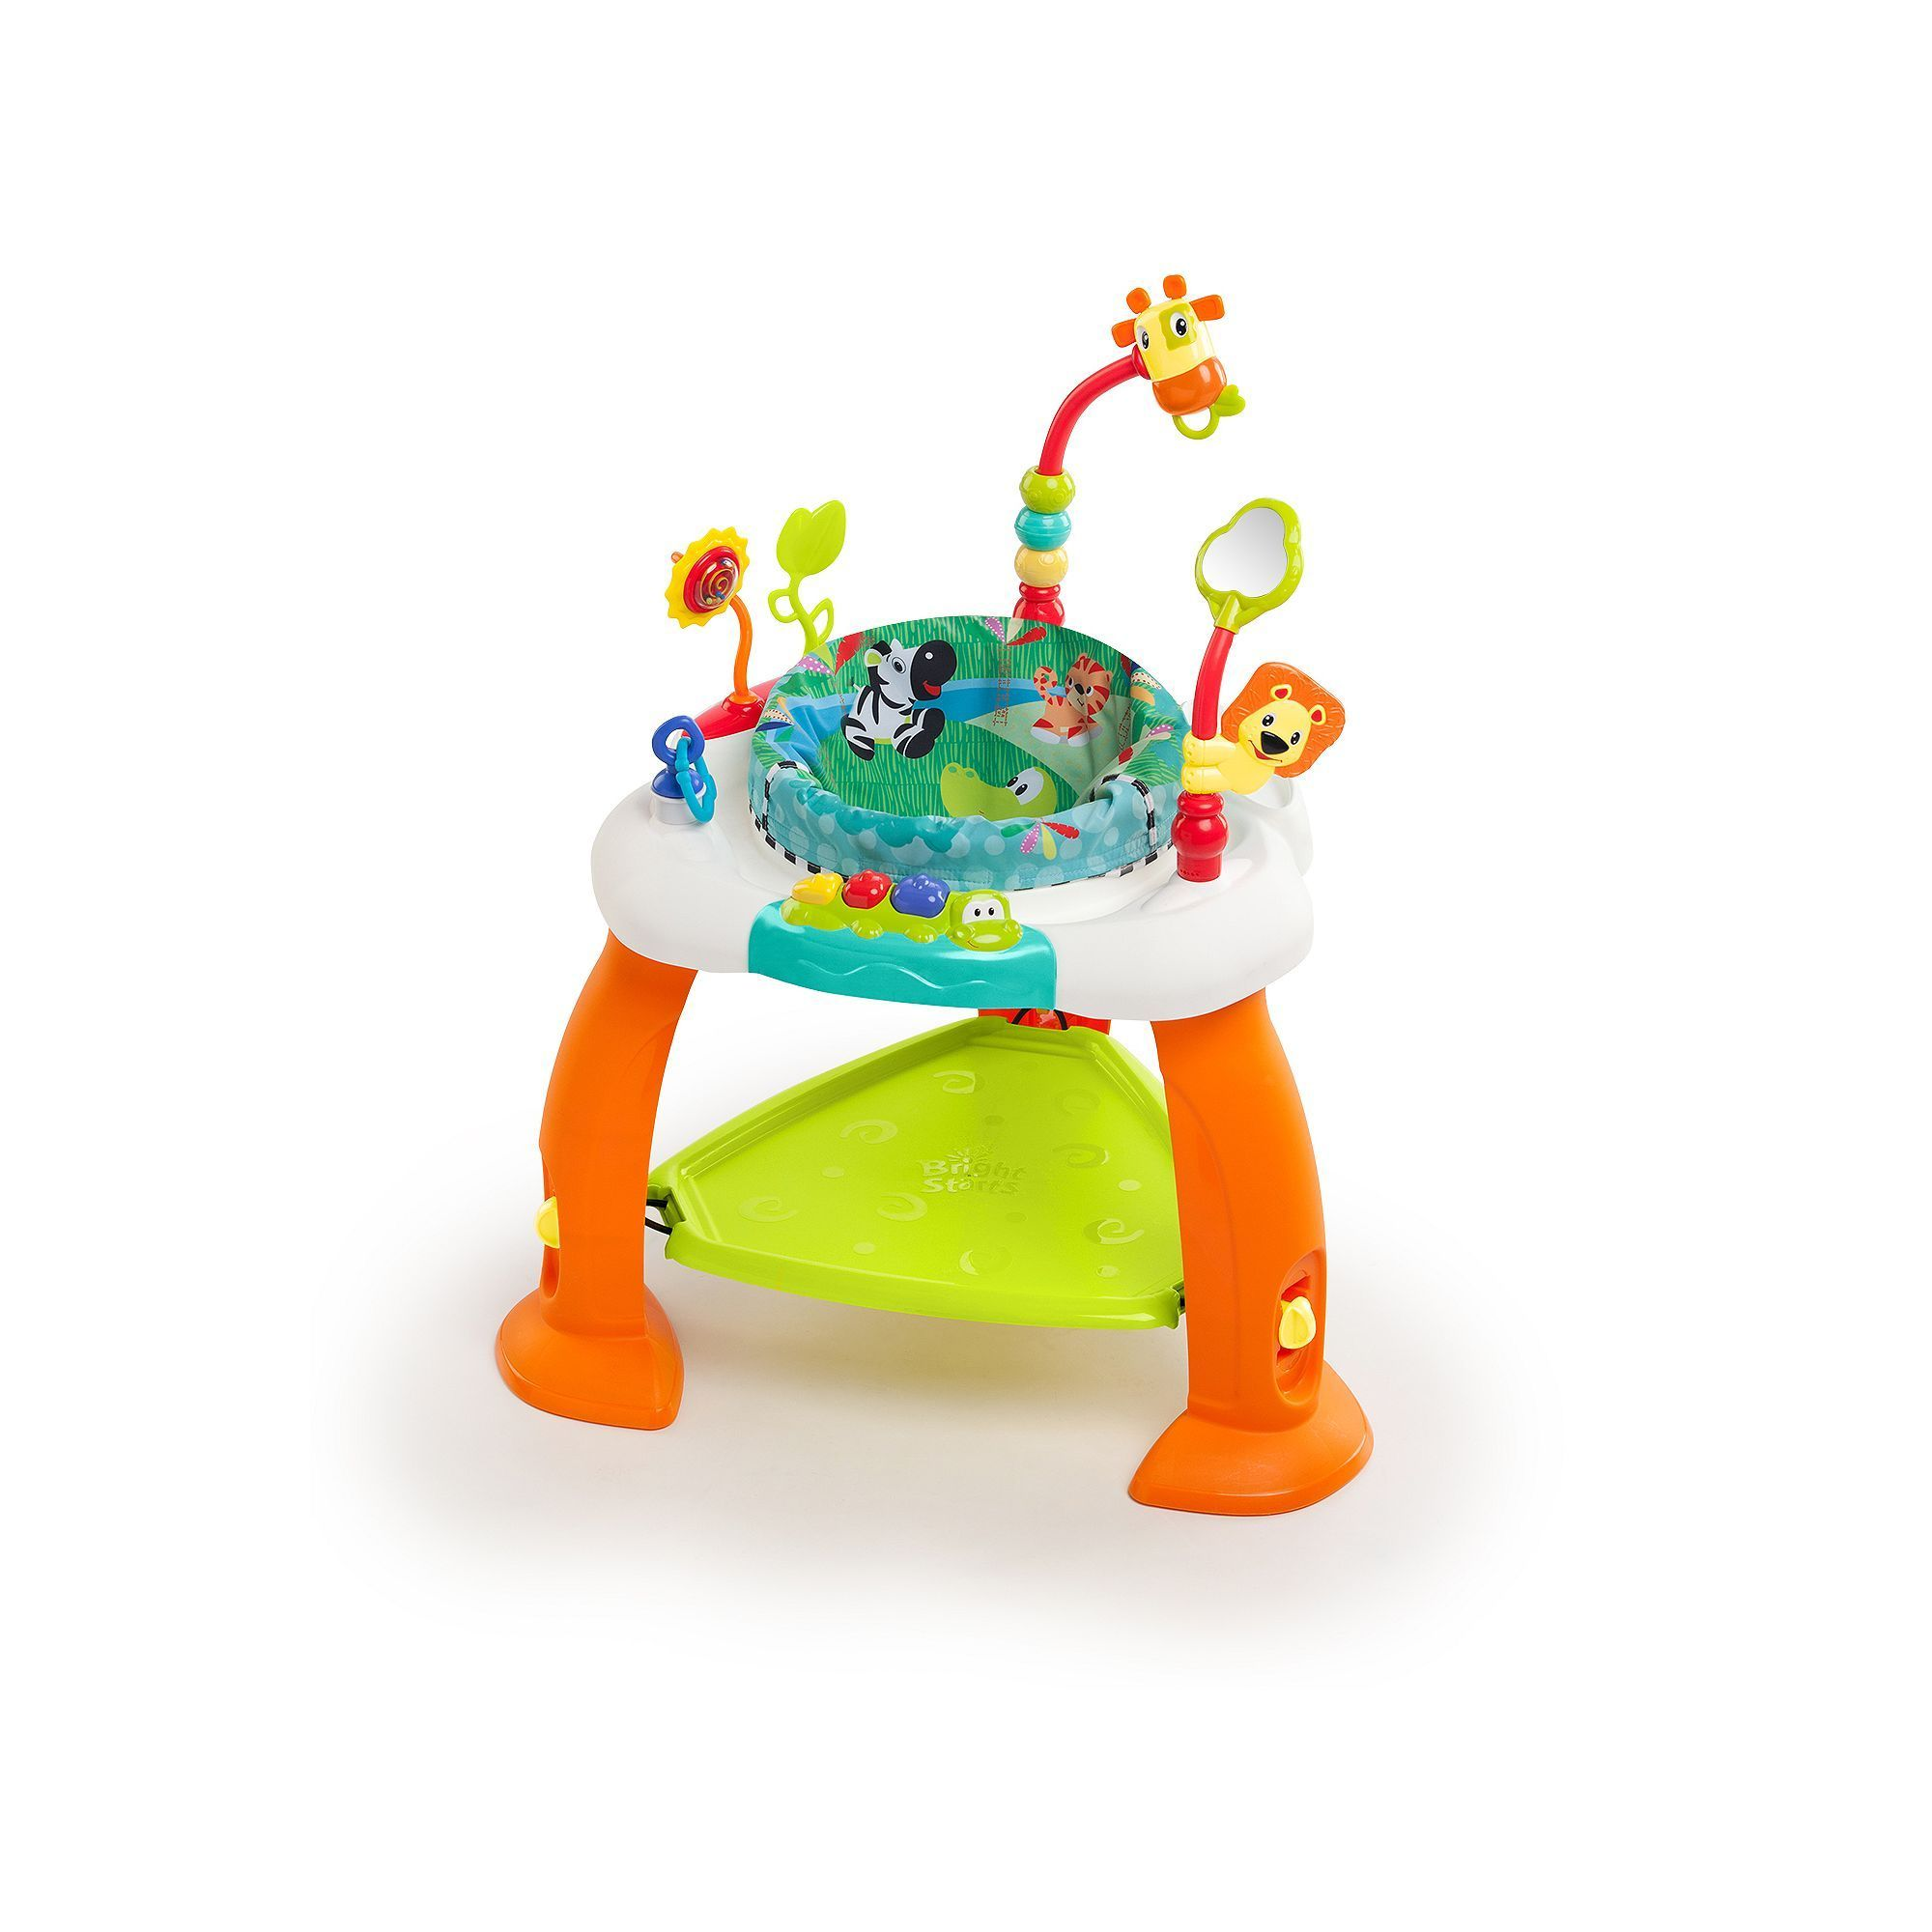 Bright Starts Bounce Bounce Baby Bouncer, Orange   Bouncers and Products